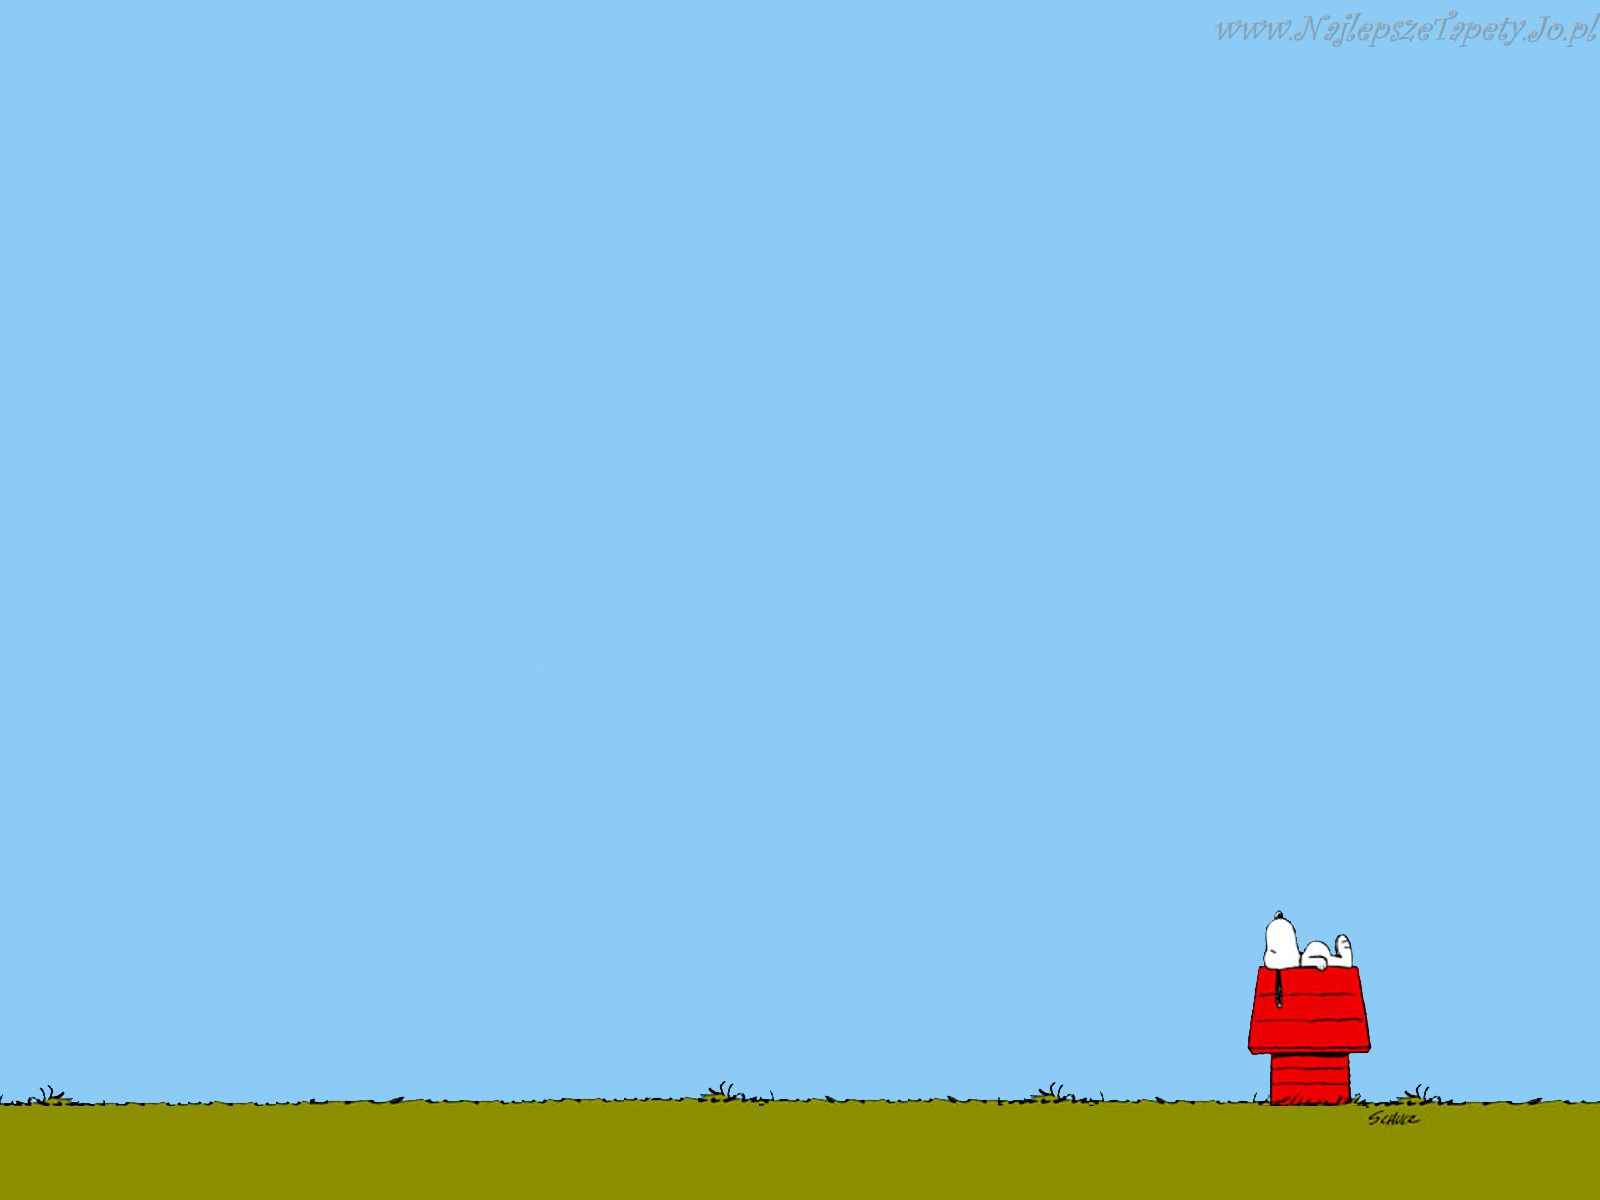 Snoopy Charlie Wallpaper 1600x1200 Snoopy Charlie Brown Peanuts 1600x1200